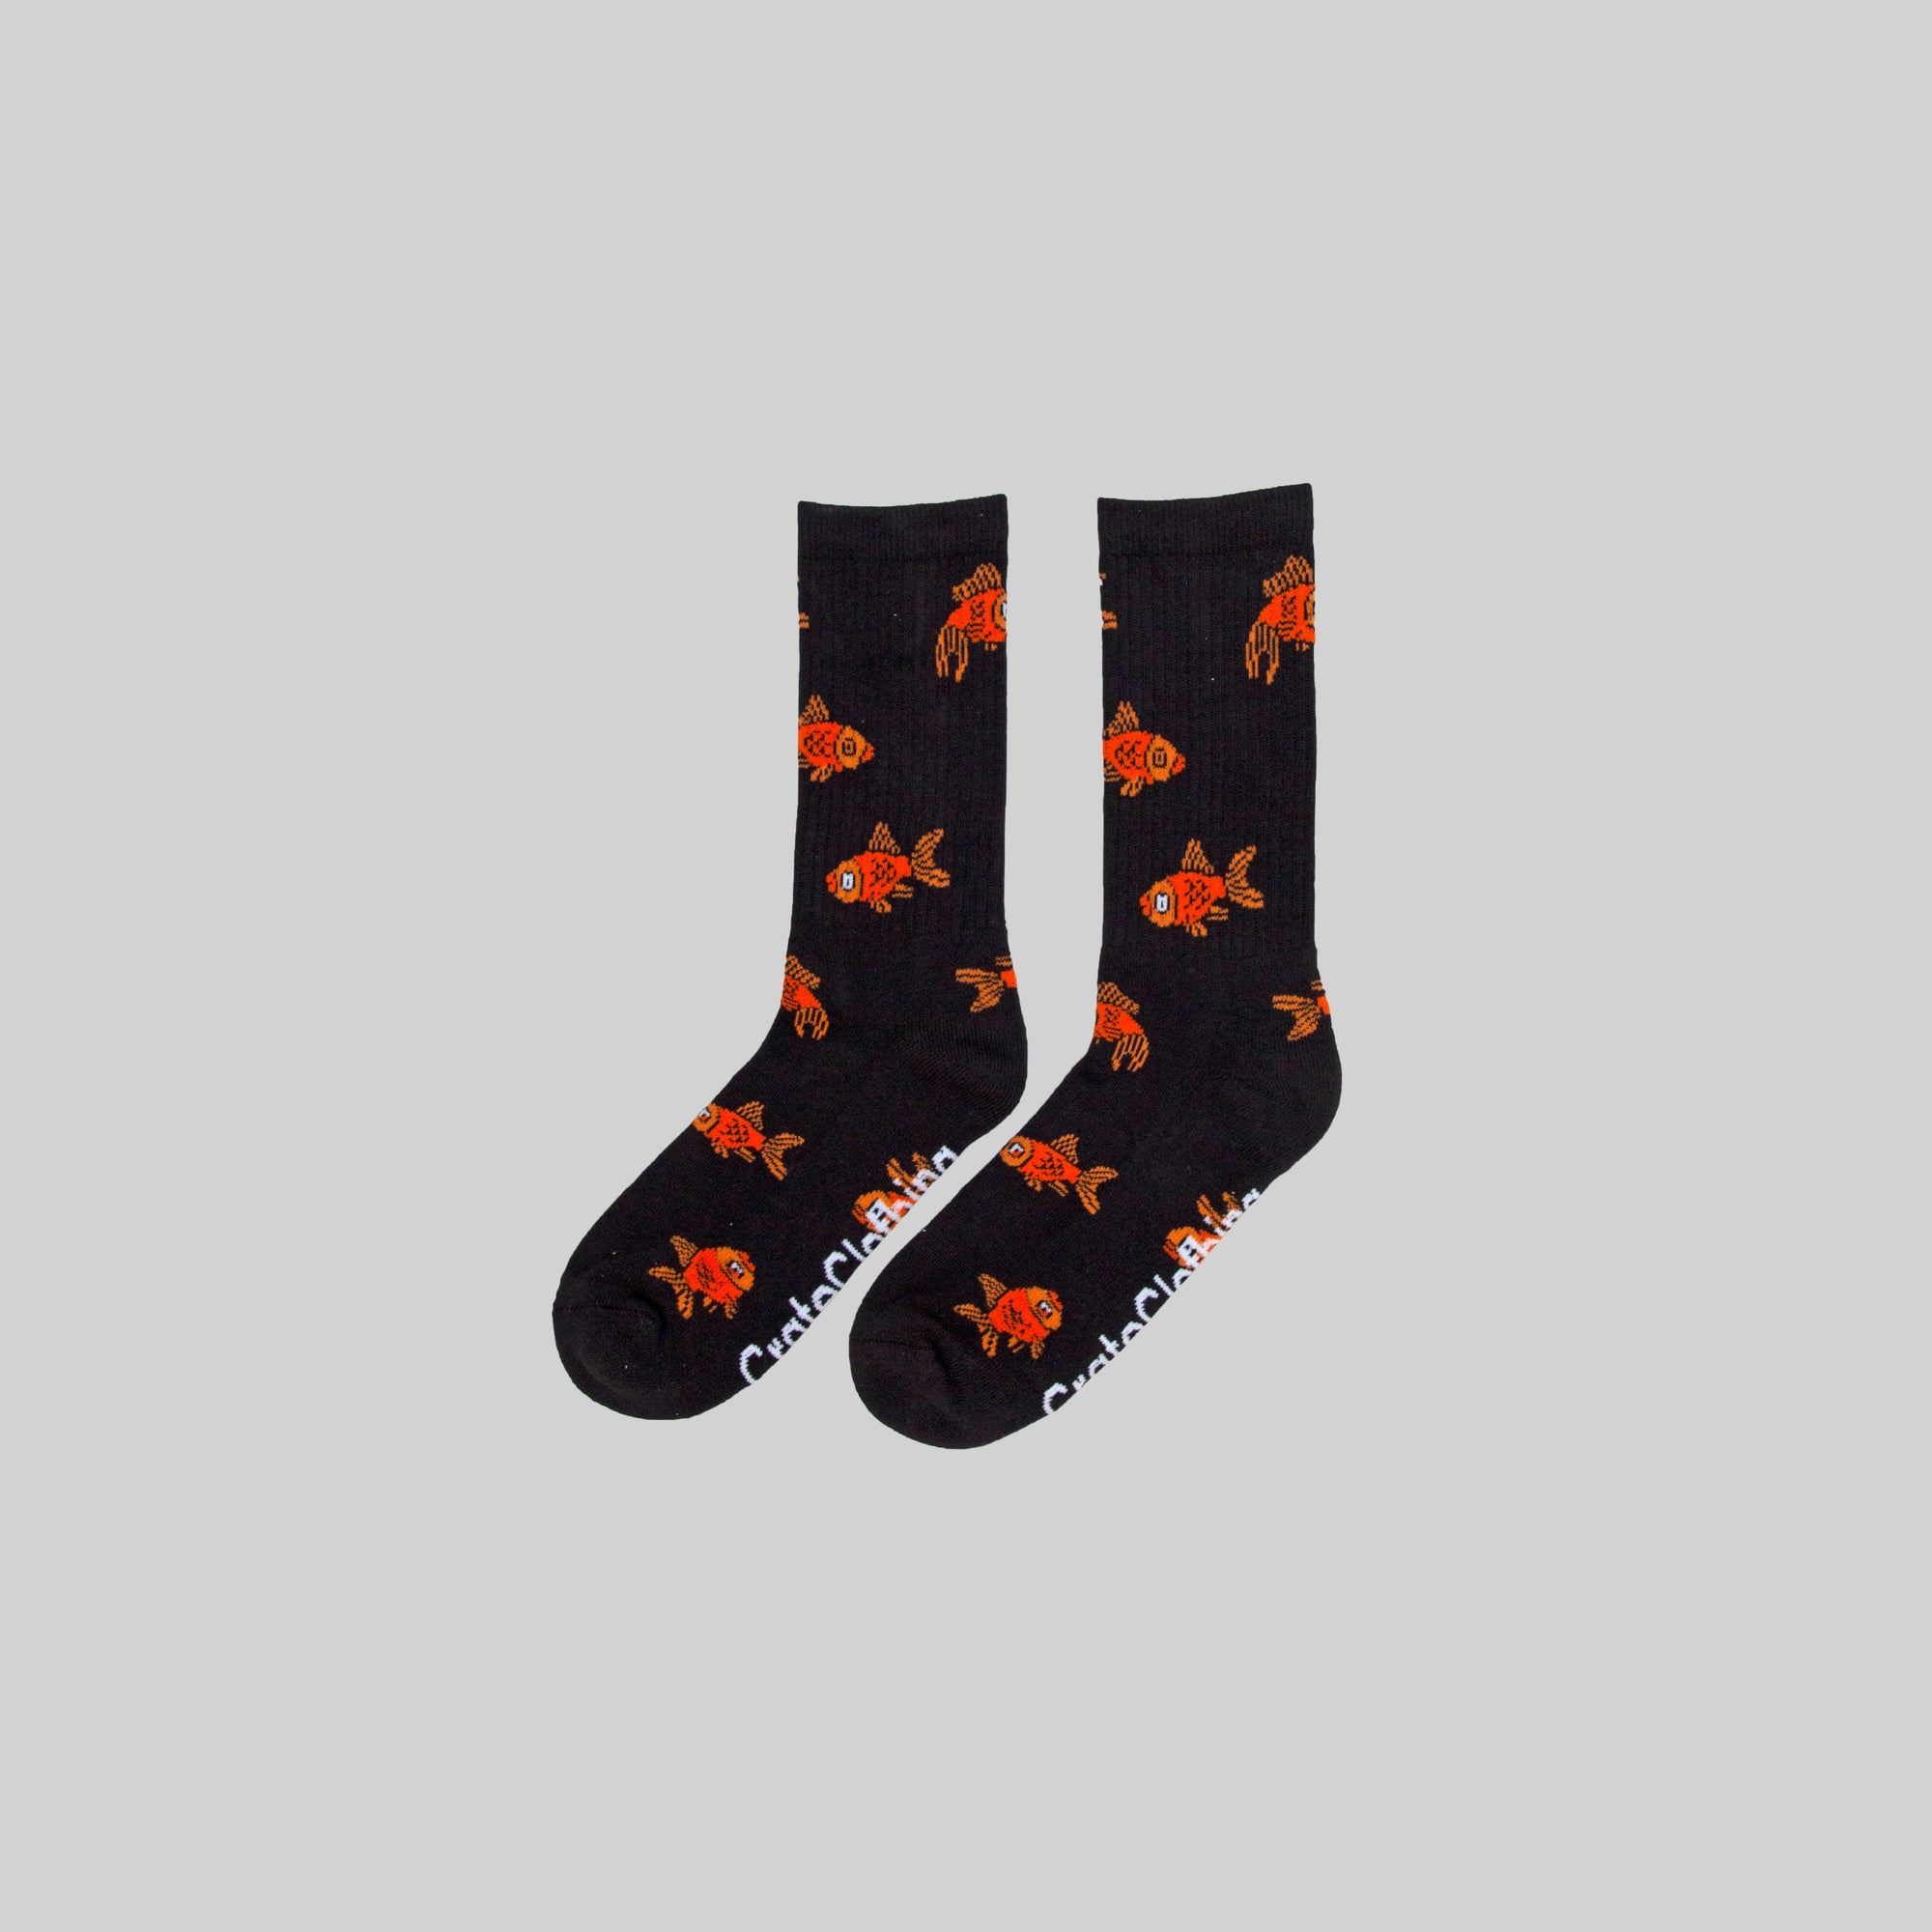 Golden days Socks-Blk